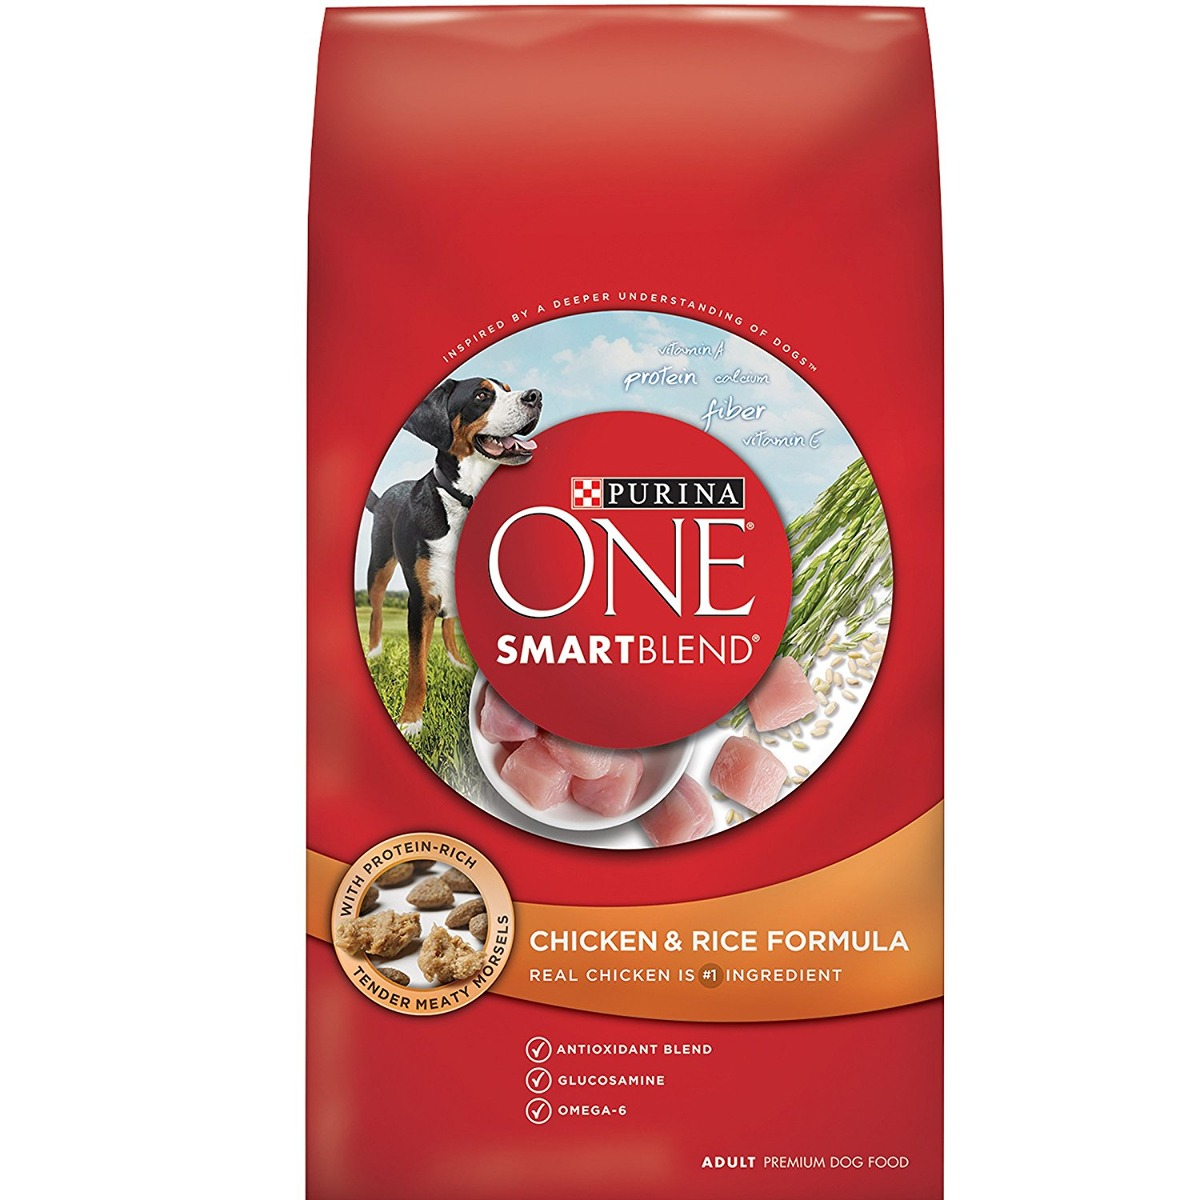 Purina one smartblend chicken rice formula dry dog food purina one smartblend chicken rice formula dry dog food cargando zoom forumfinder Images